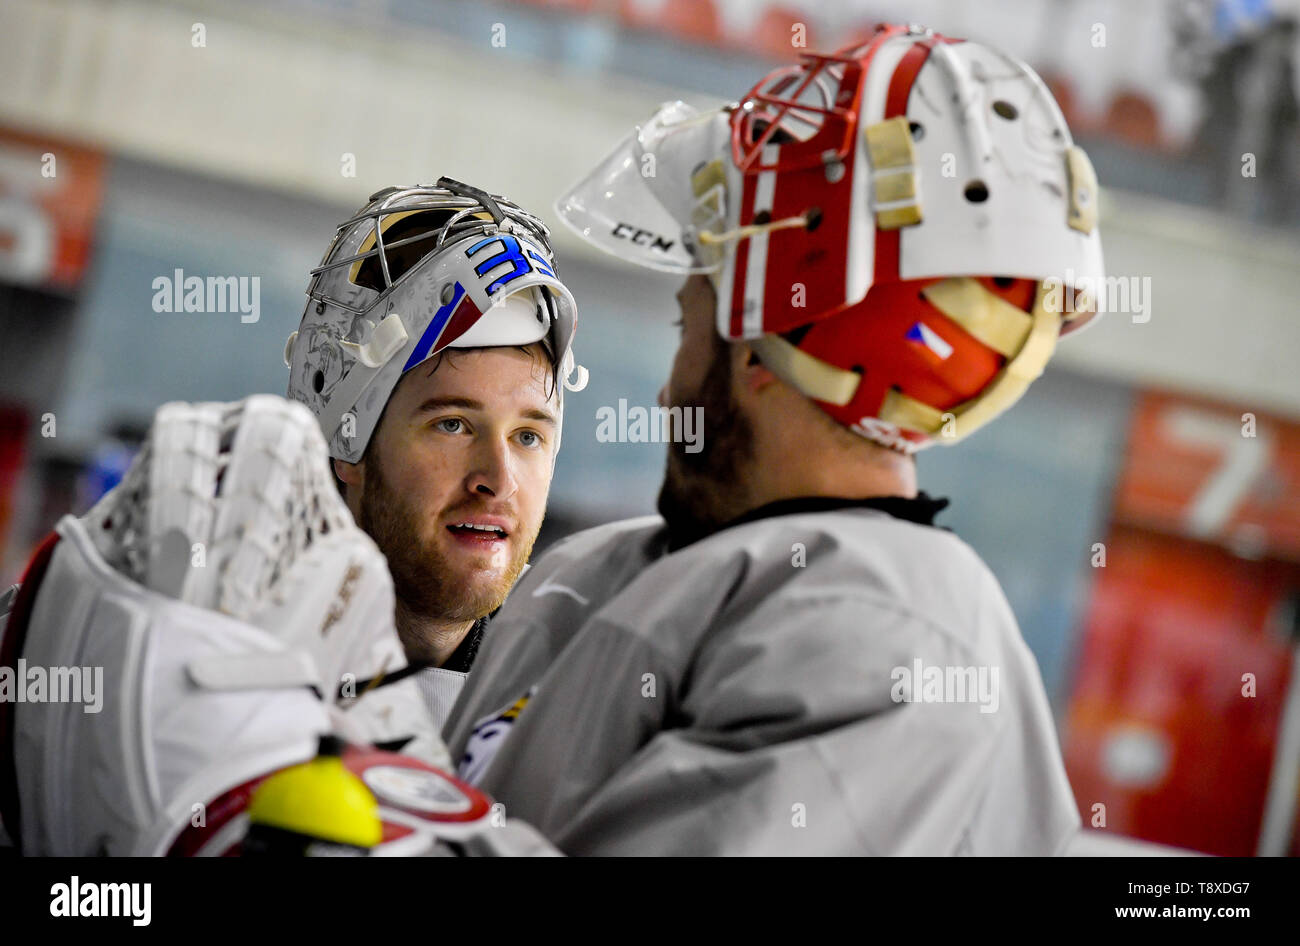 Bratislava, Slovakia. 15th May, 2019. Czech players L-R Pavel Francouz and Simon Hrubec attend a training session of the Czech national team within the 2019 IIHF World Championship in Bratislava, Slovakia, on May 15, 2019, one day prior to the match against Latvia. Credit: Vit Simanek/CTK Photo/Alamy Live News Stock Photo